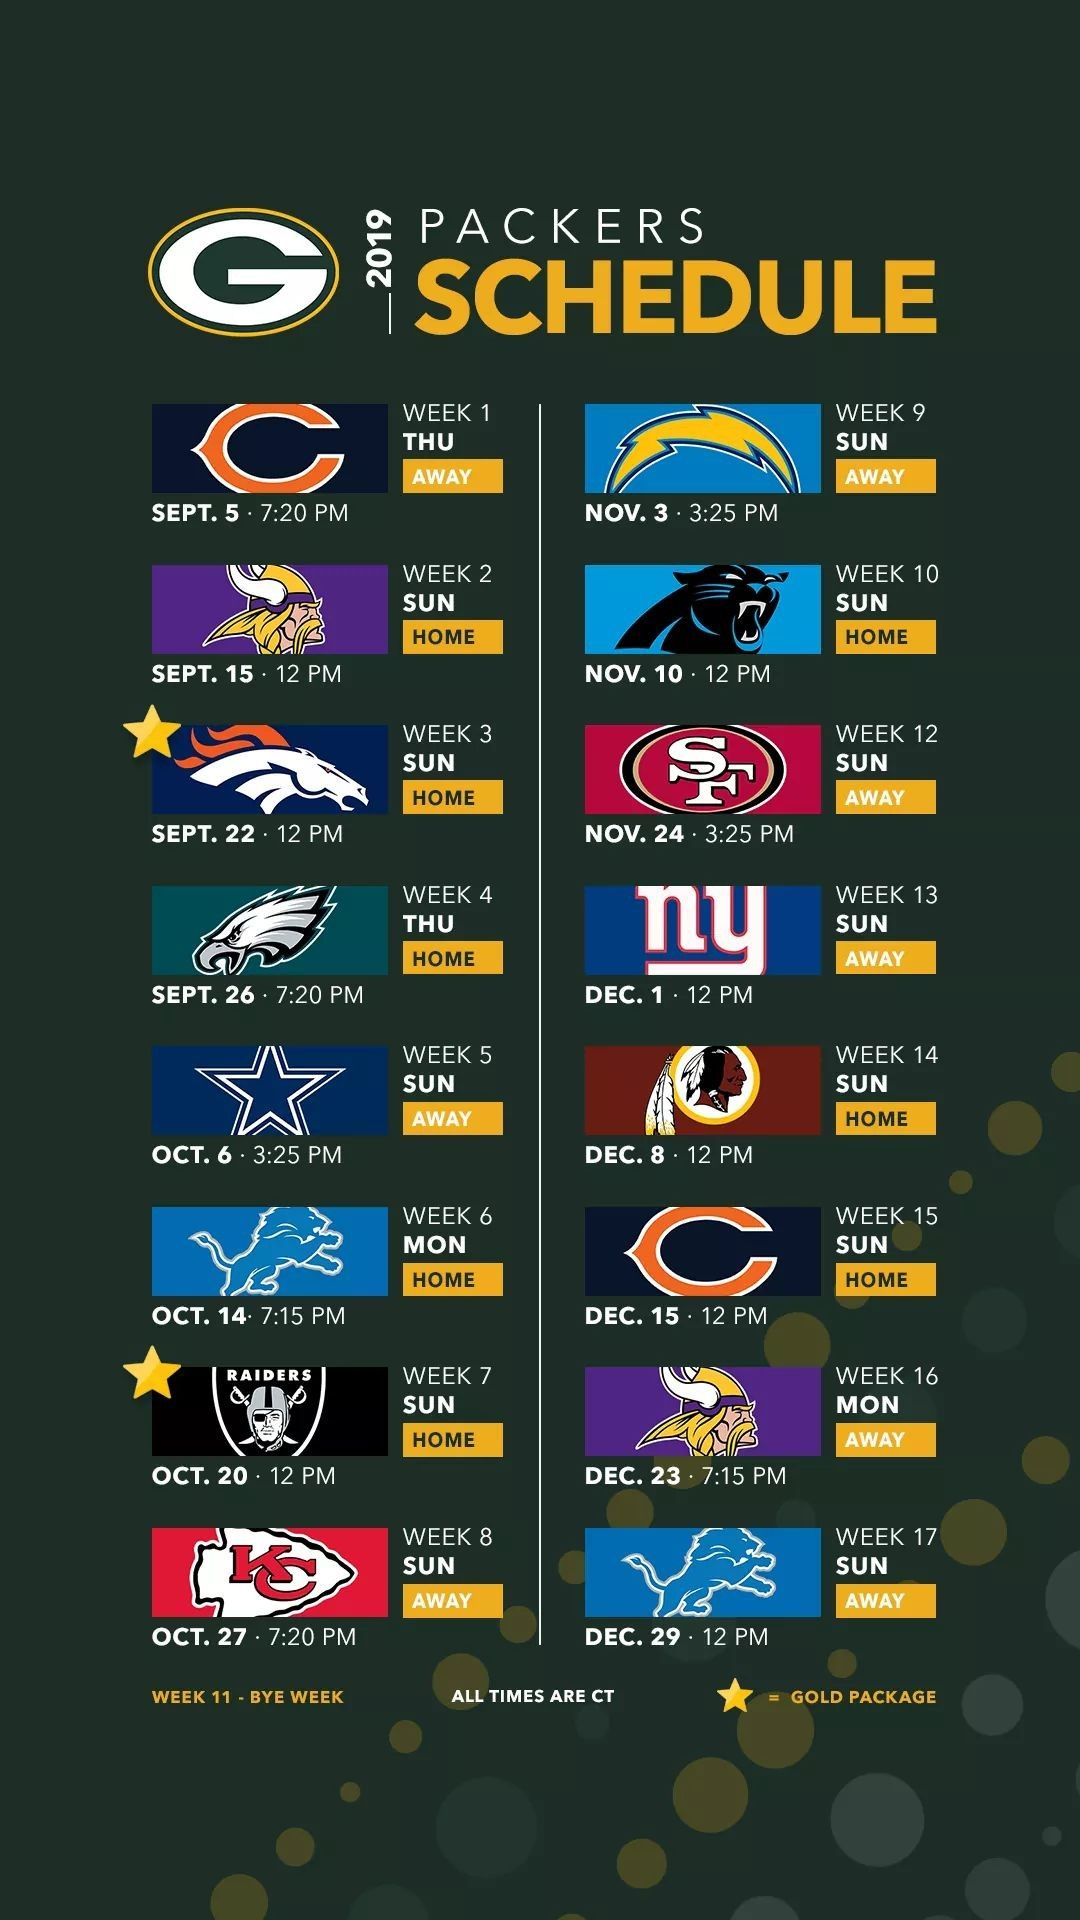 2019 Schedule Packers Schedule Green Bay Packers Packers